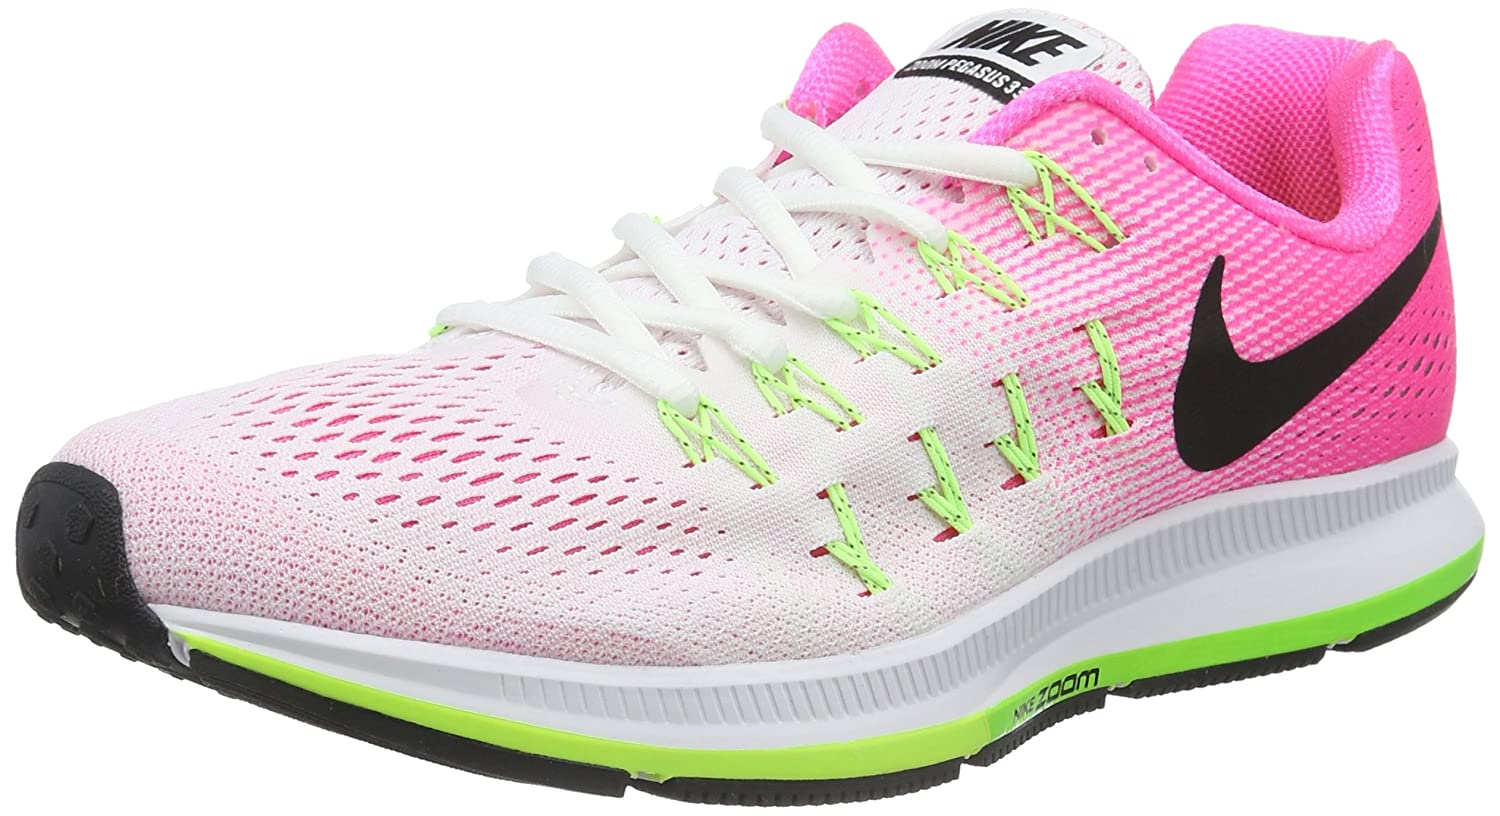 NIKE Women's Air Zoom Pegasus 33 B014EC9L9K 9.5 B(M) US|White/Pink Blast/Electric Green/Black